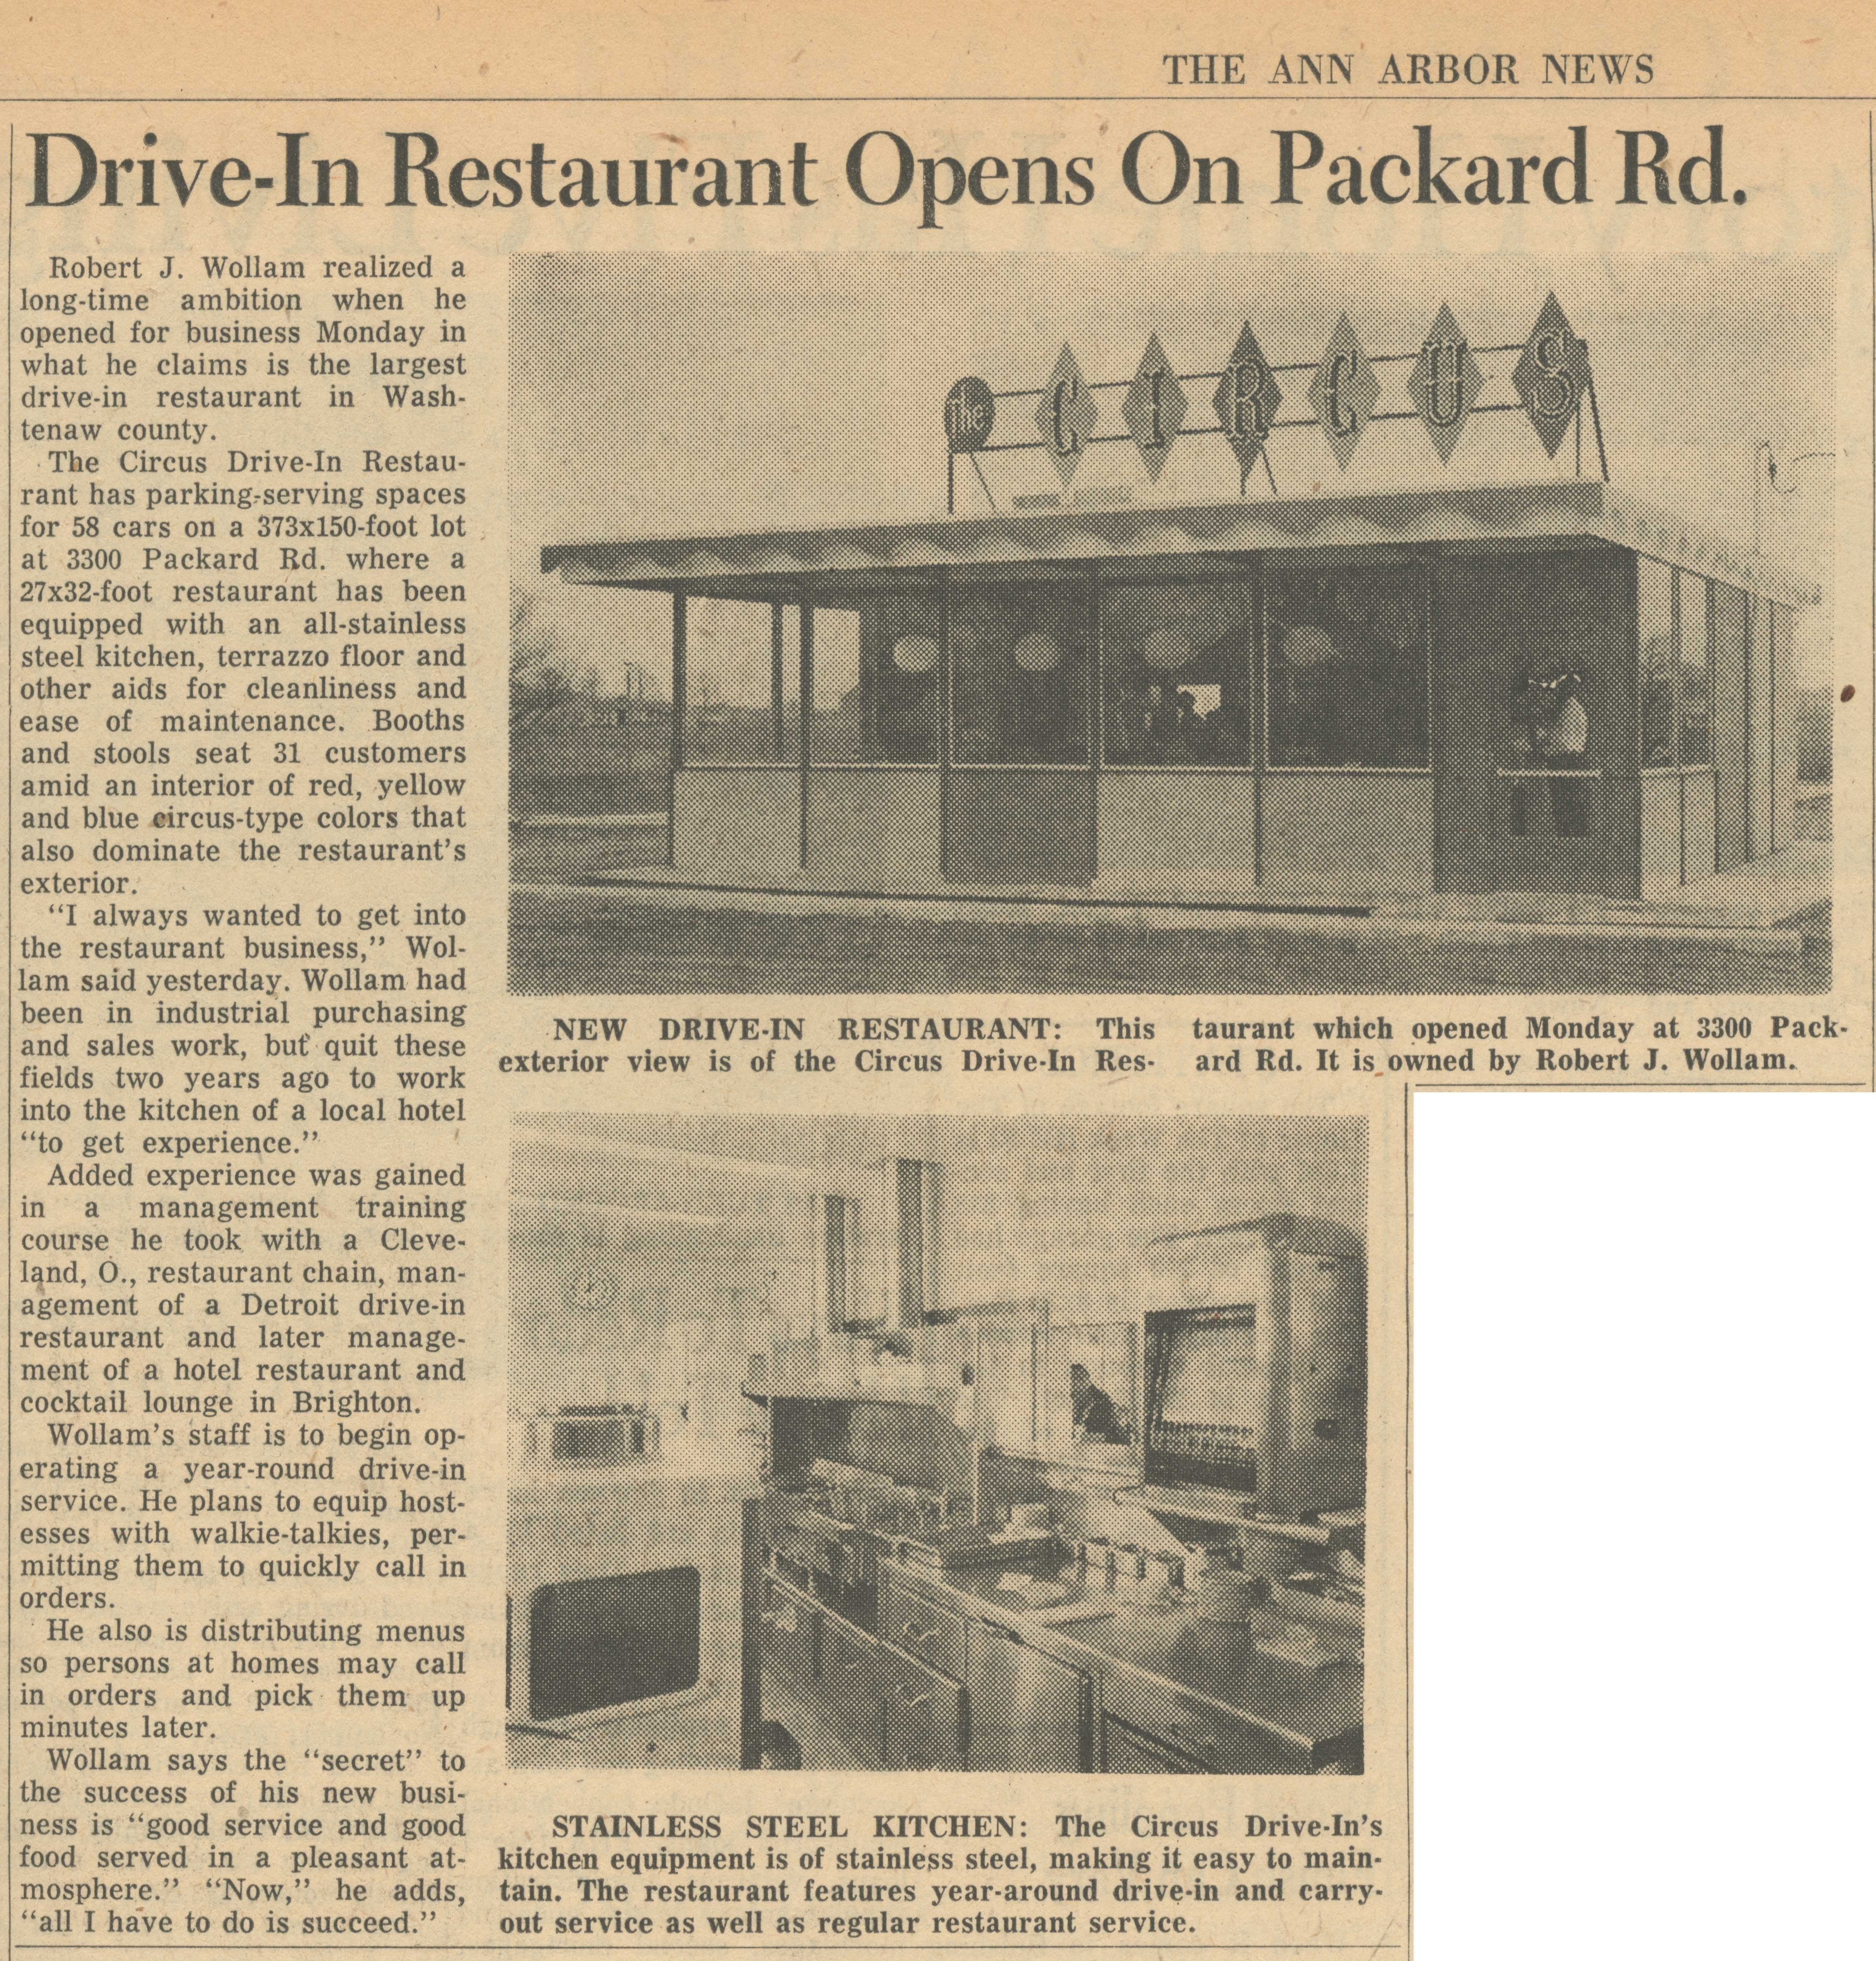 Drive-In Restaurant Opens On Packard Rd. image